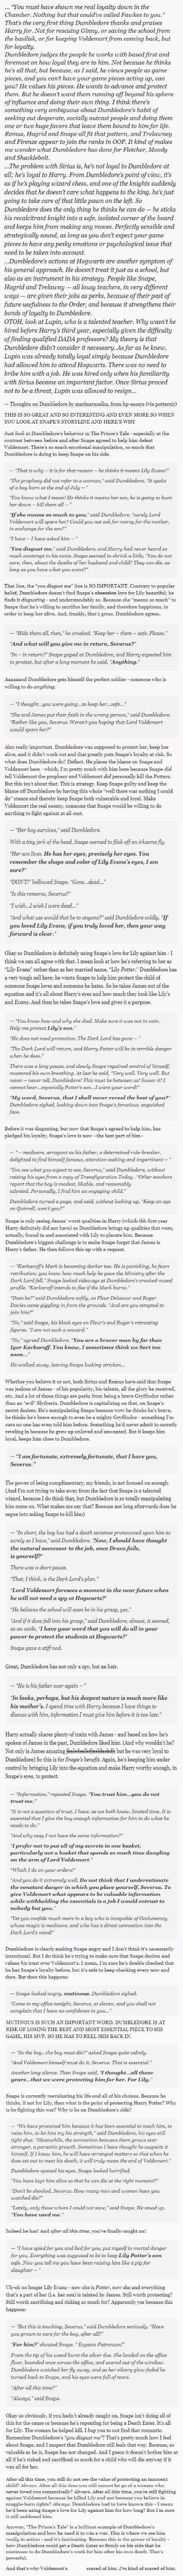 I remember the first time I read the series at an older age and realizing just how manipulative Dumbledore really was. I still maintain he had little choice but to play the board if he wanted to stop Voldemort, but he lost that glowing heroic feeling I once had.